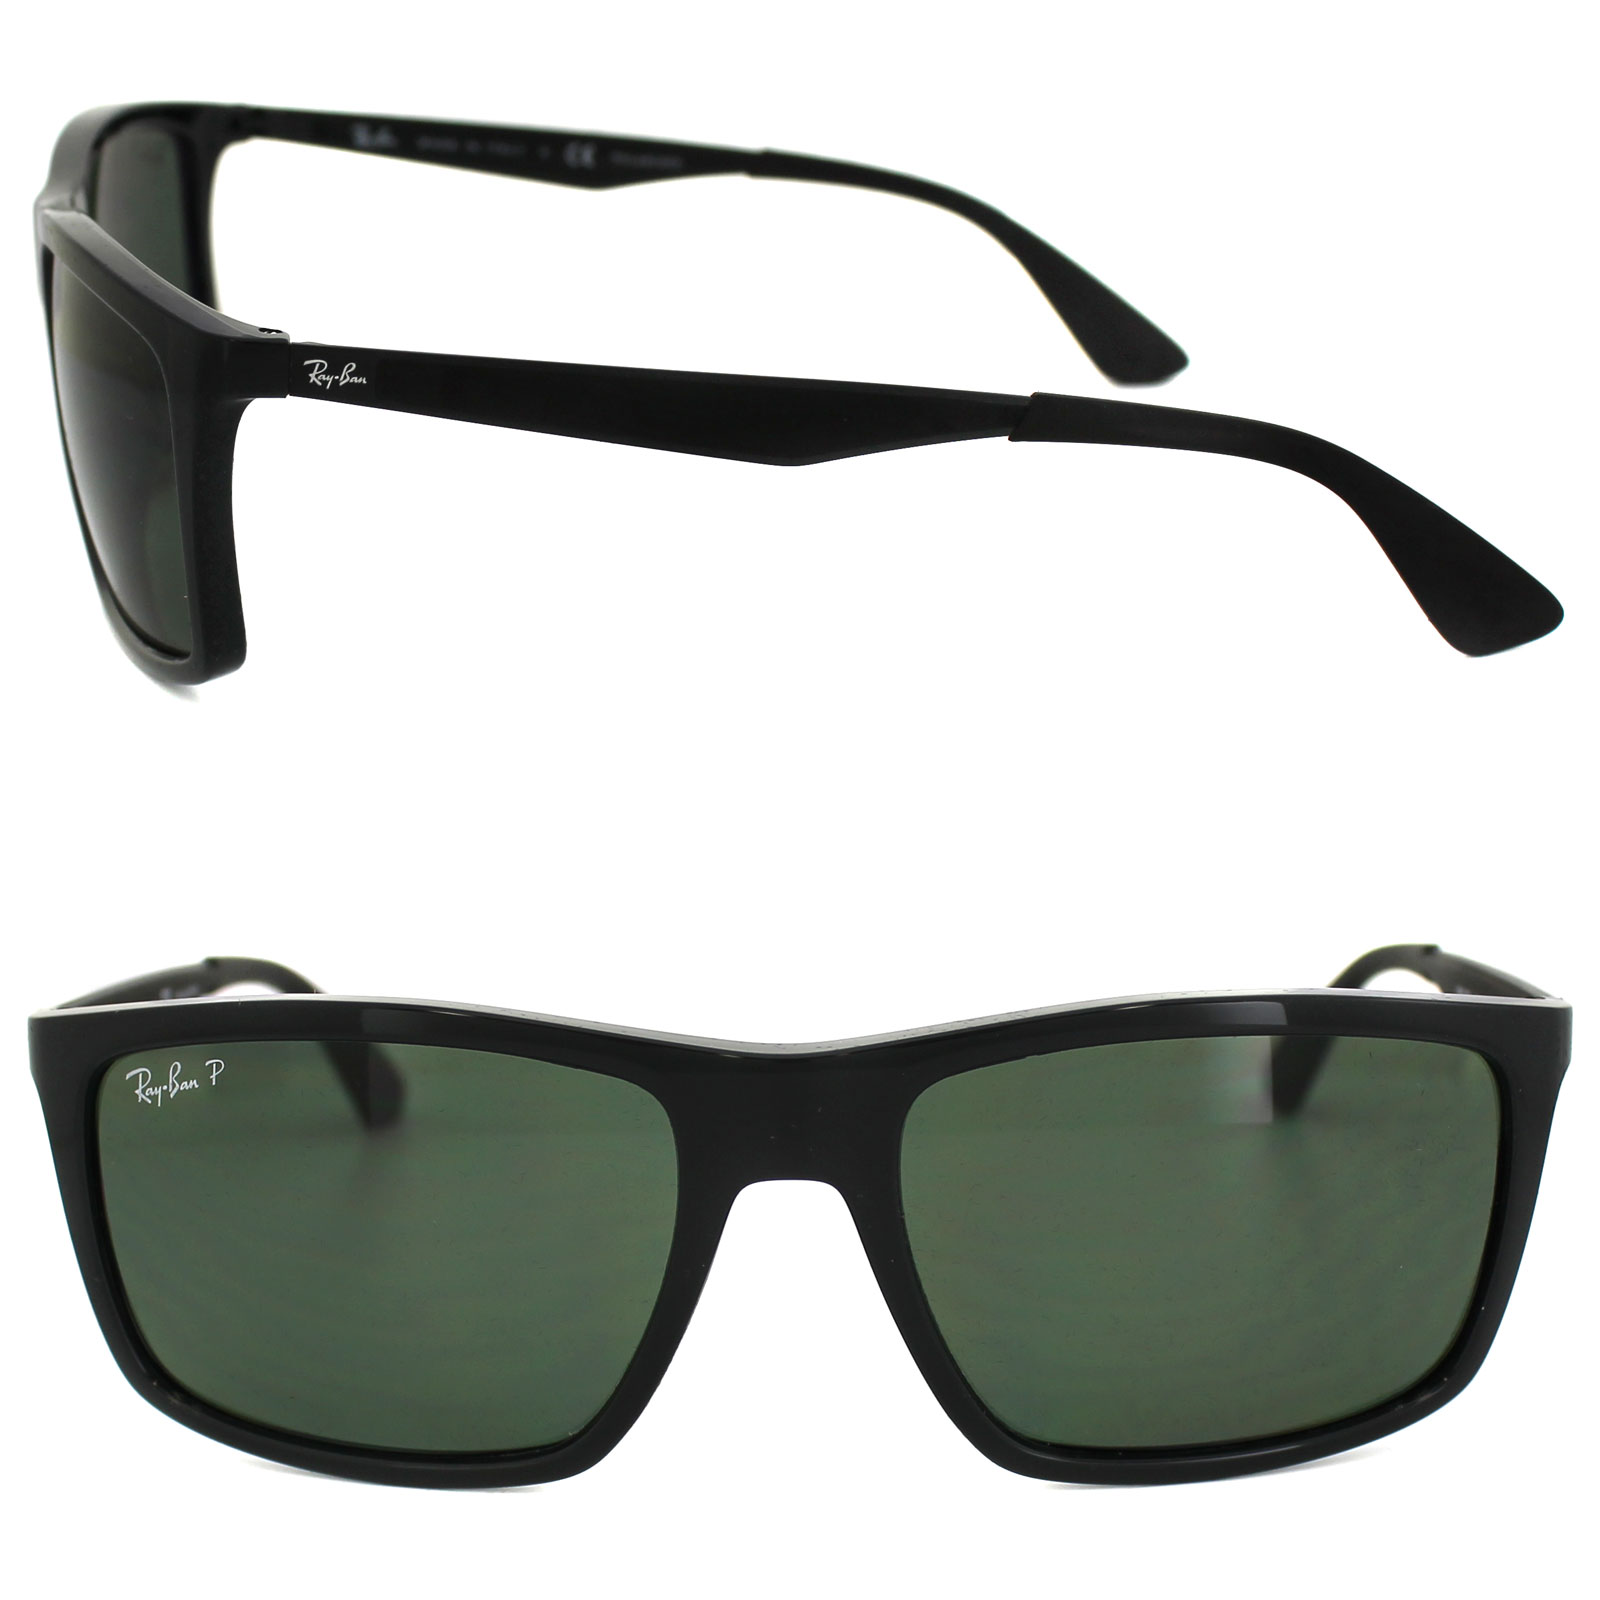 cceacb7cb2 Ray-Ban Sunglasses 4228 601 9A Black Green Polarized 8053672406030 ...